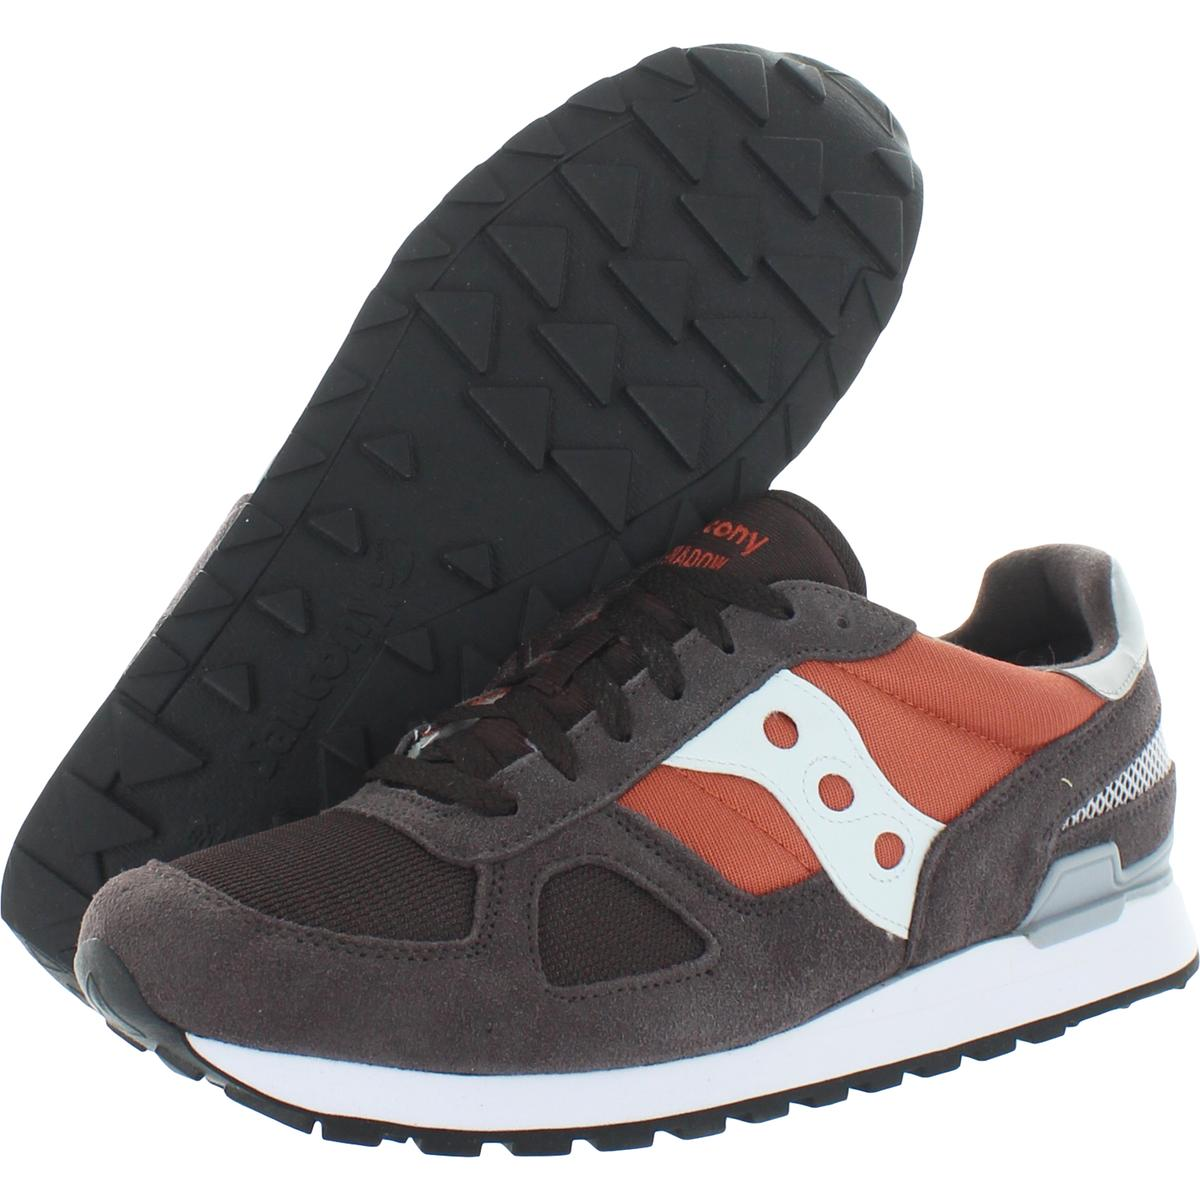 Saucony-Mens-Shadow-Original-Trainers-Suede-Comfort-Sneakers-Shoes-BHFO-0431 miniatuur 8